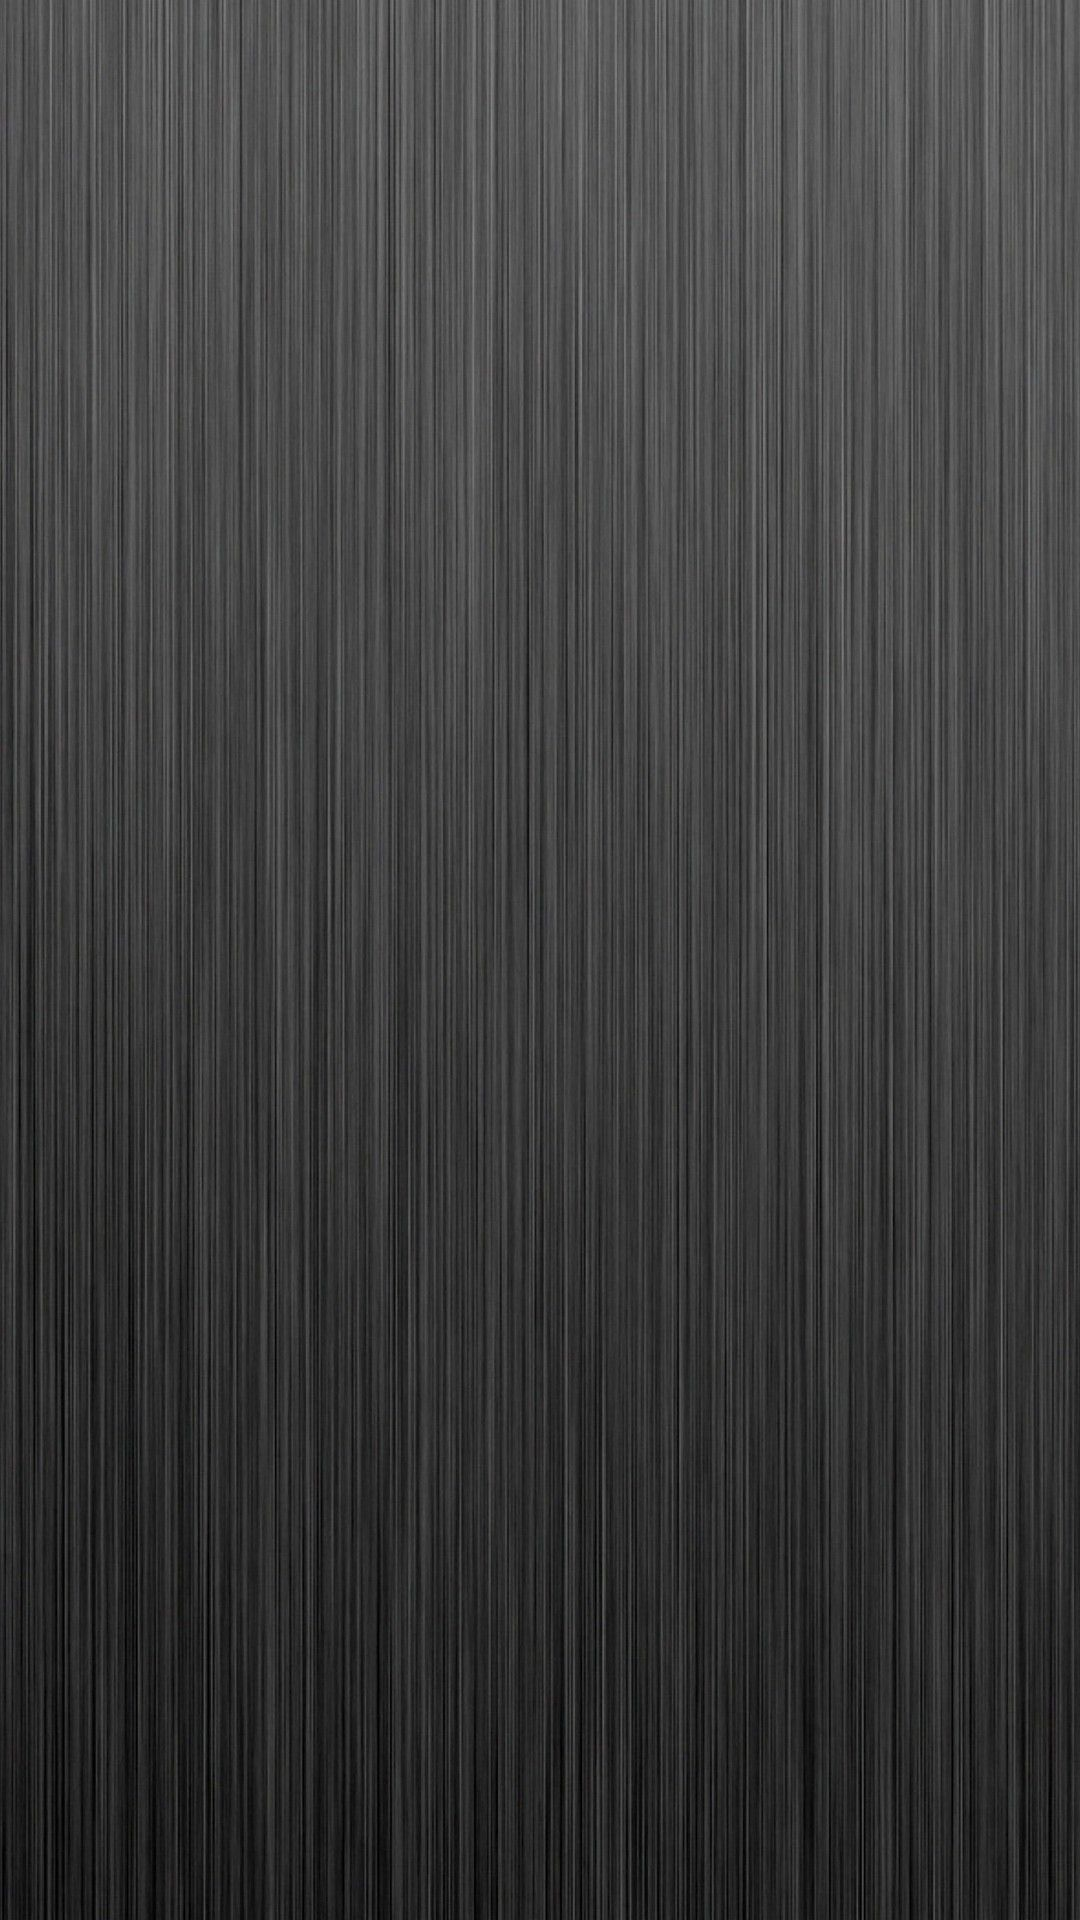 31 Wallpapers To Perfectly Match Your New Black Iphone 7 Preppy Wallpapers Grey Wallpaper Iphone Abstract Iphone Wallpaper Preppy Wallpaper